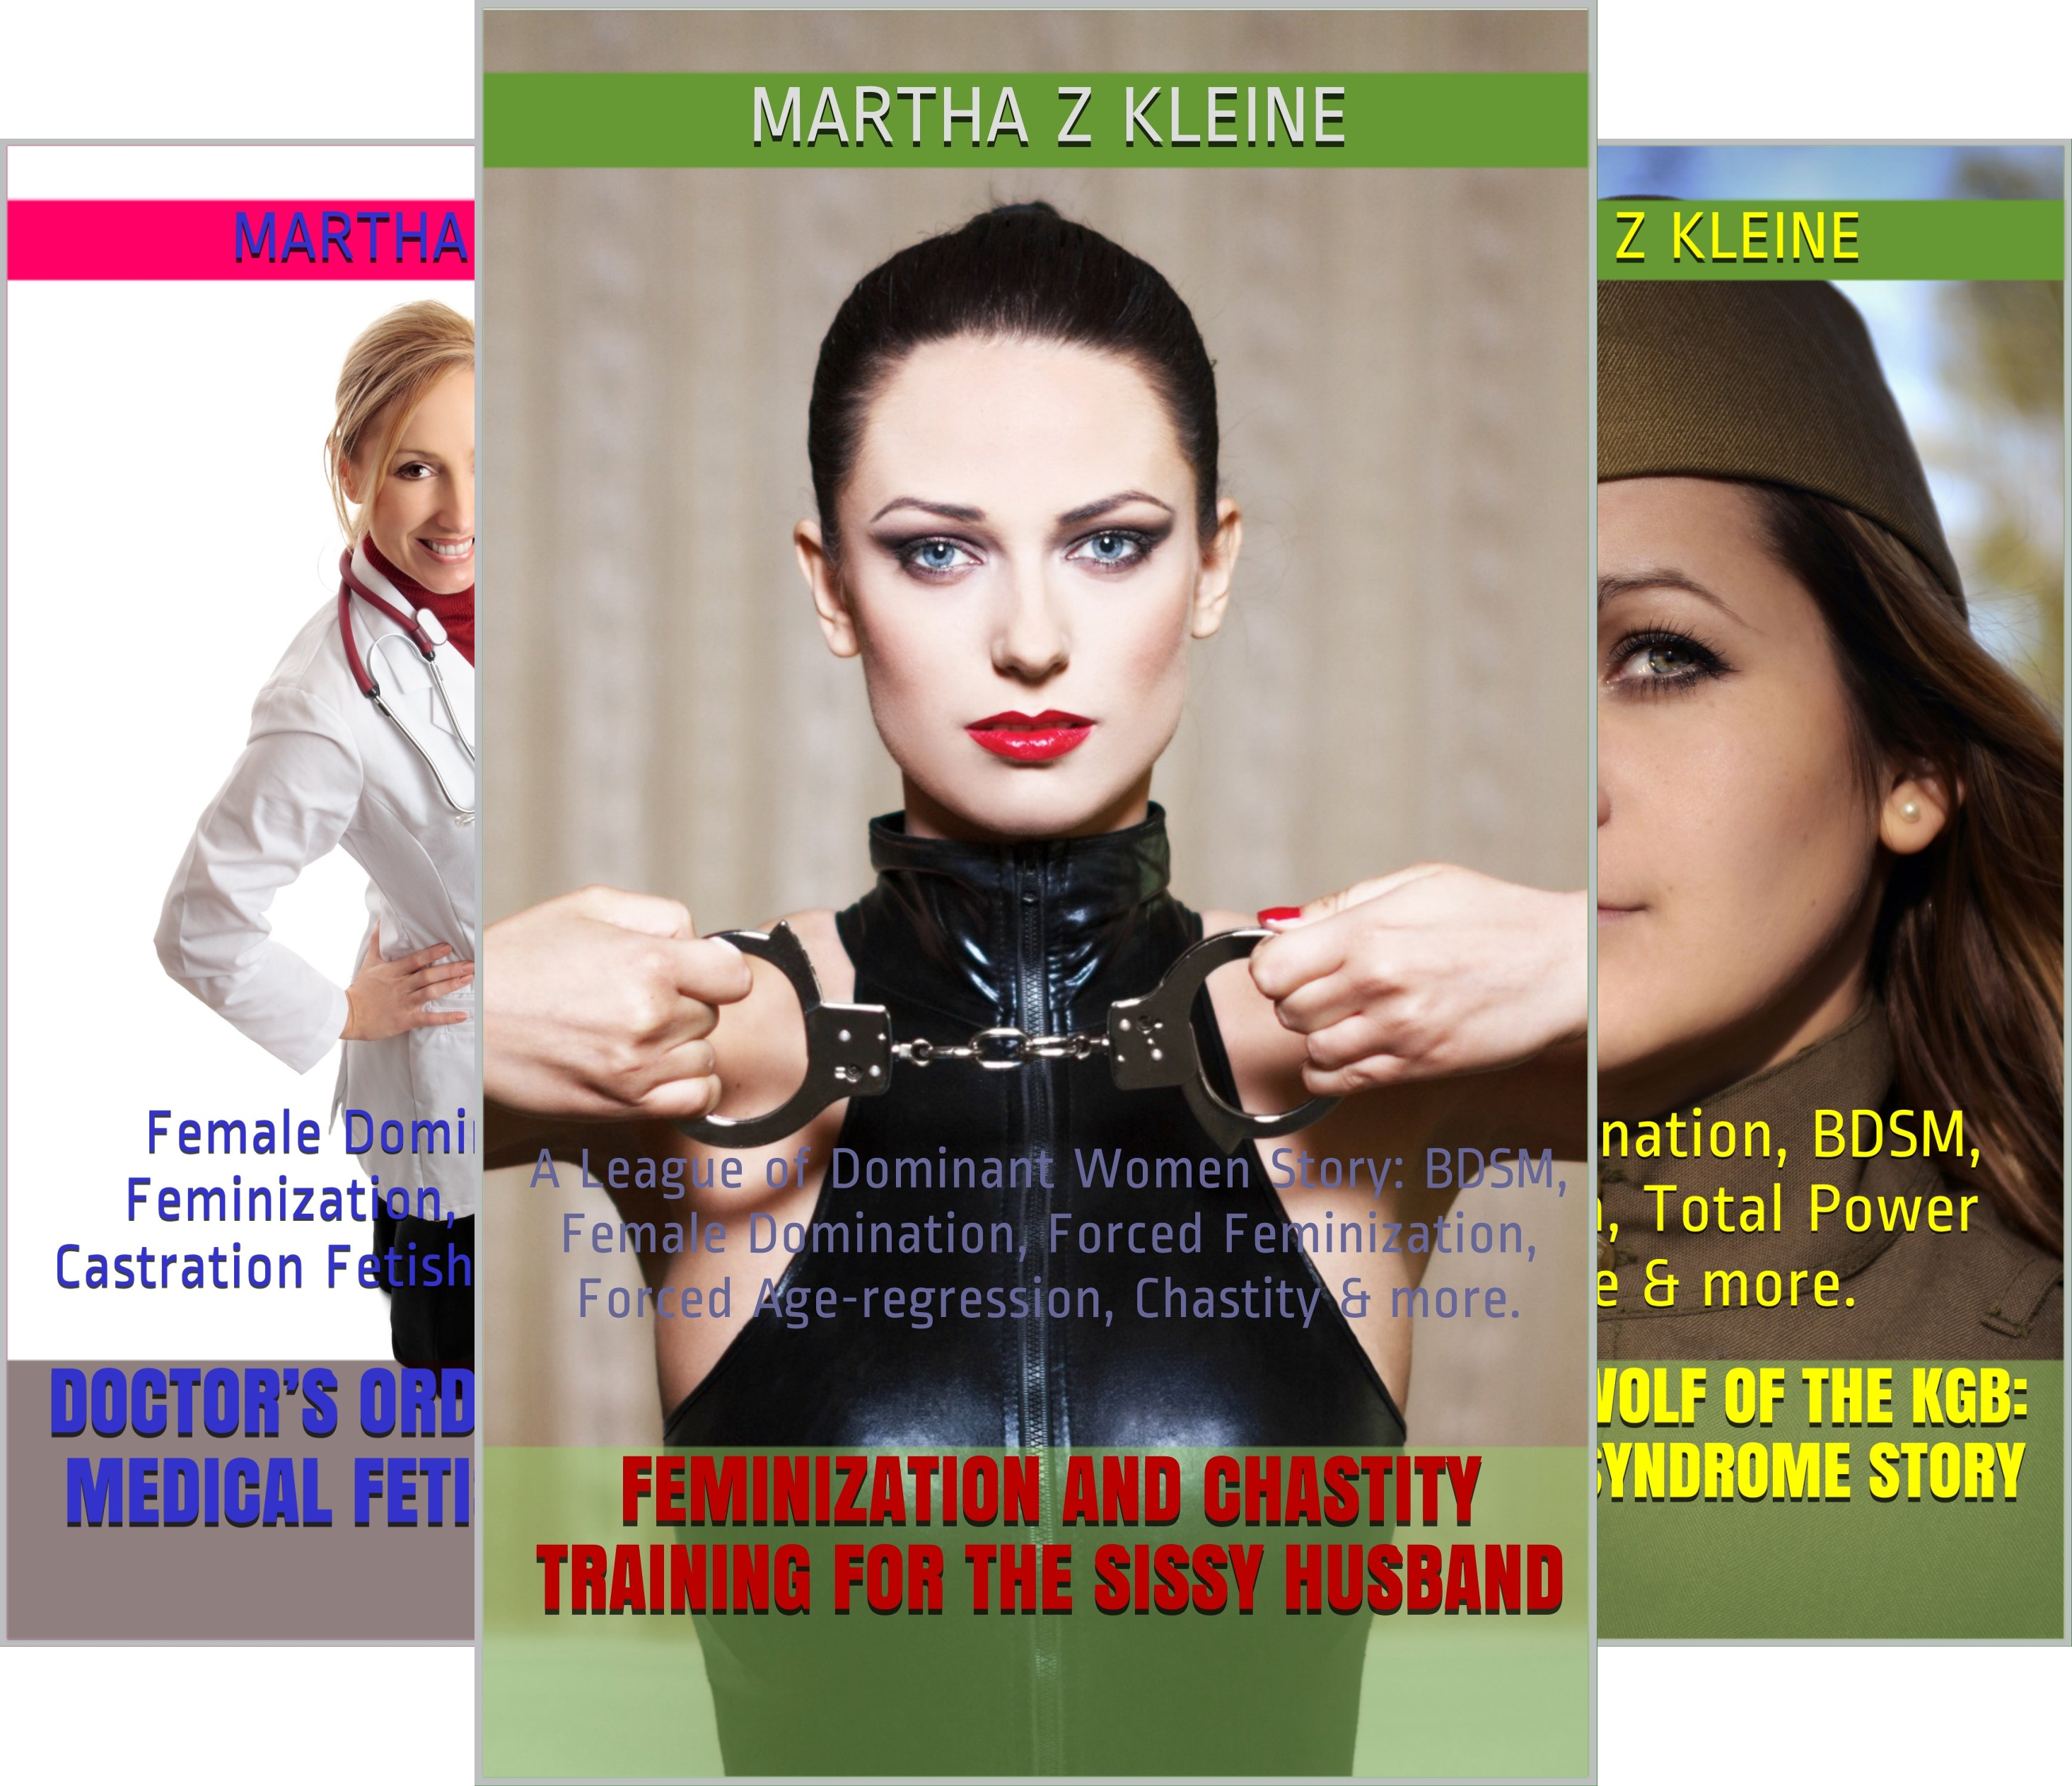 A League of Dominant Women Story (5 Book Series)